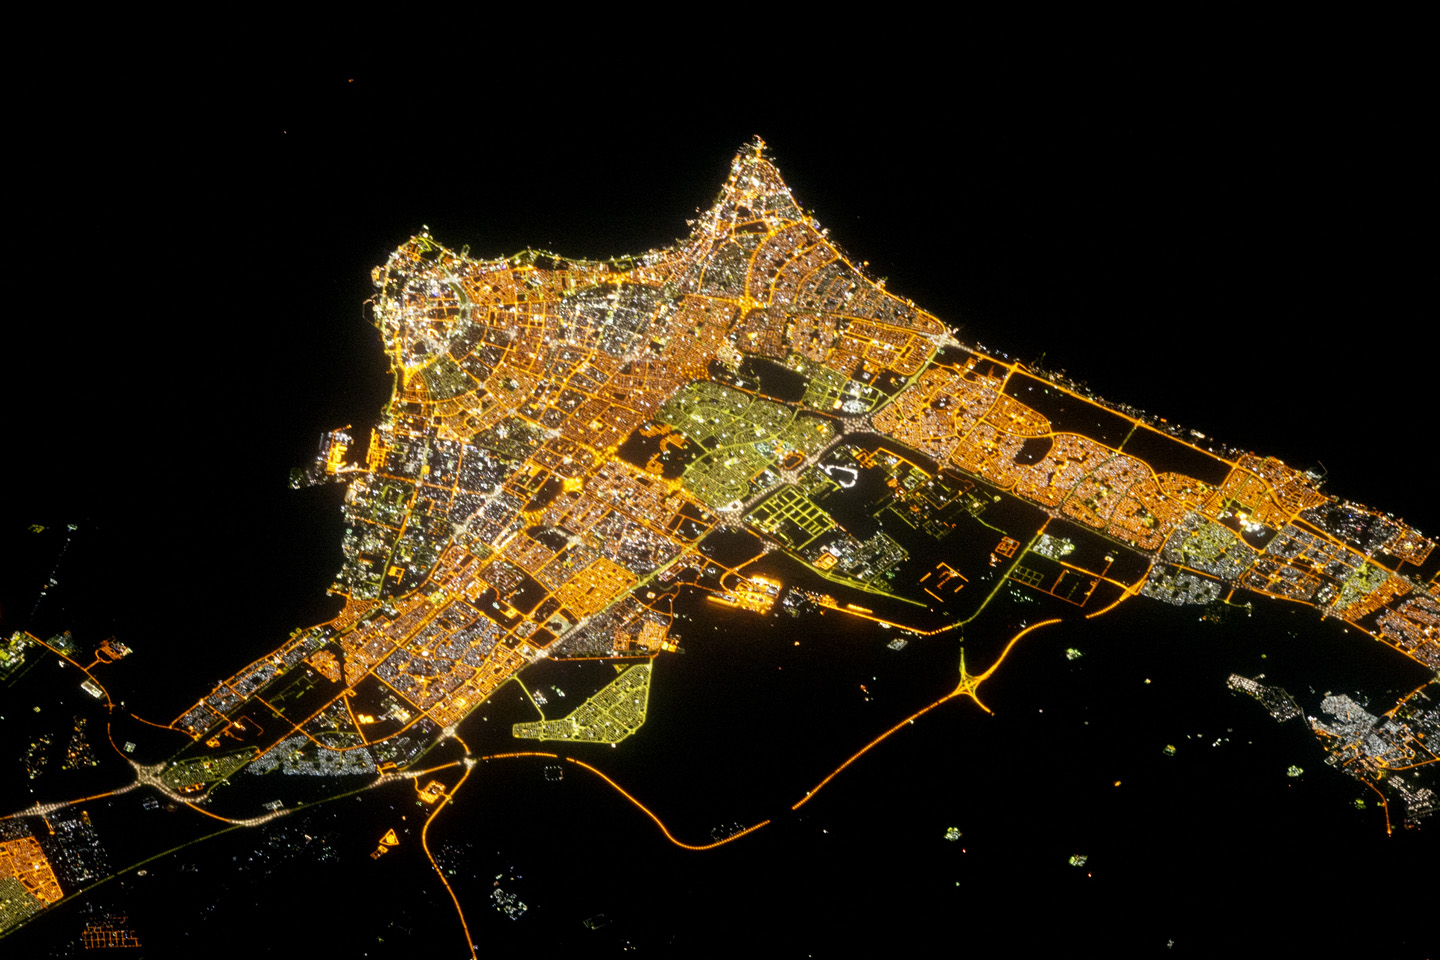 Today's Image of the Day comes thanks to the NASA Earth Observatory and features a look at the lights of Kuwait City at night.